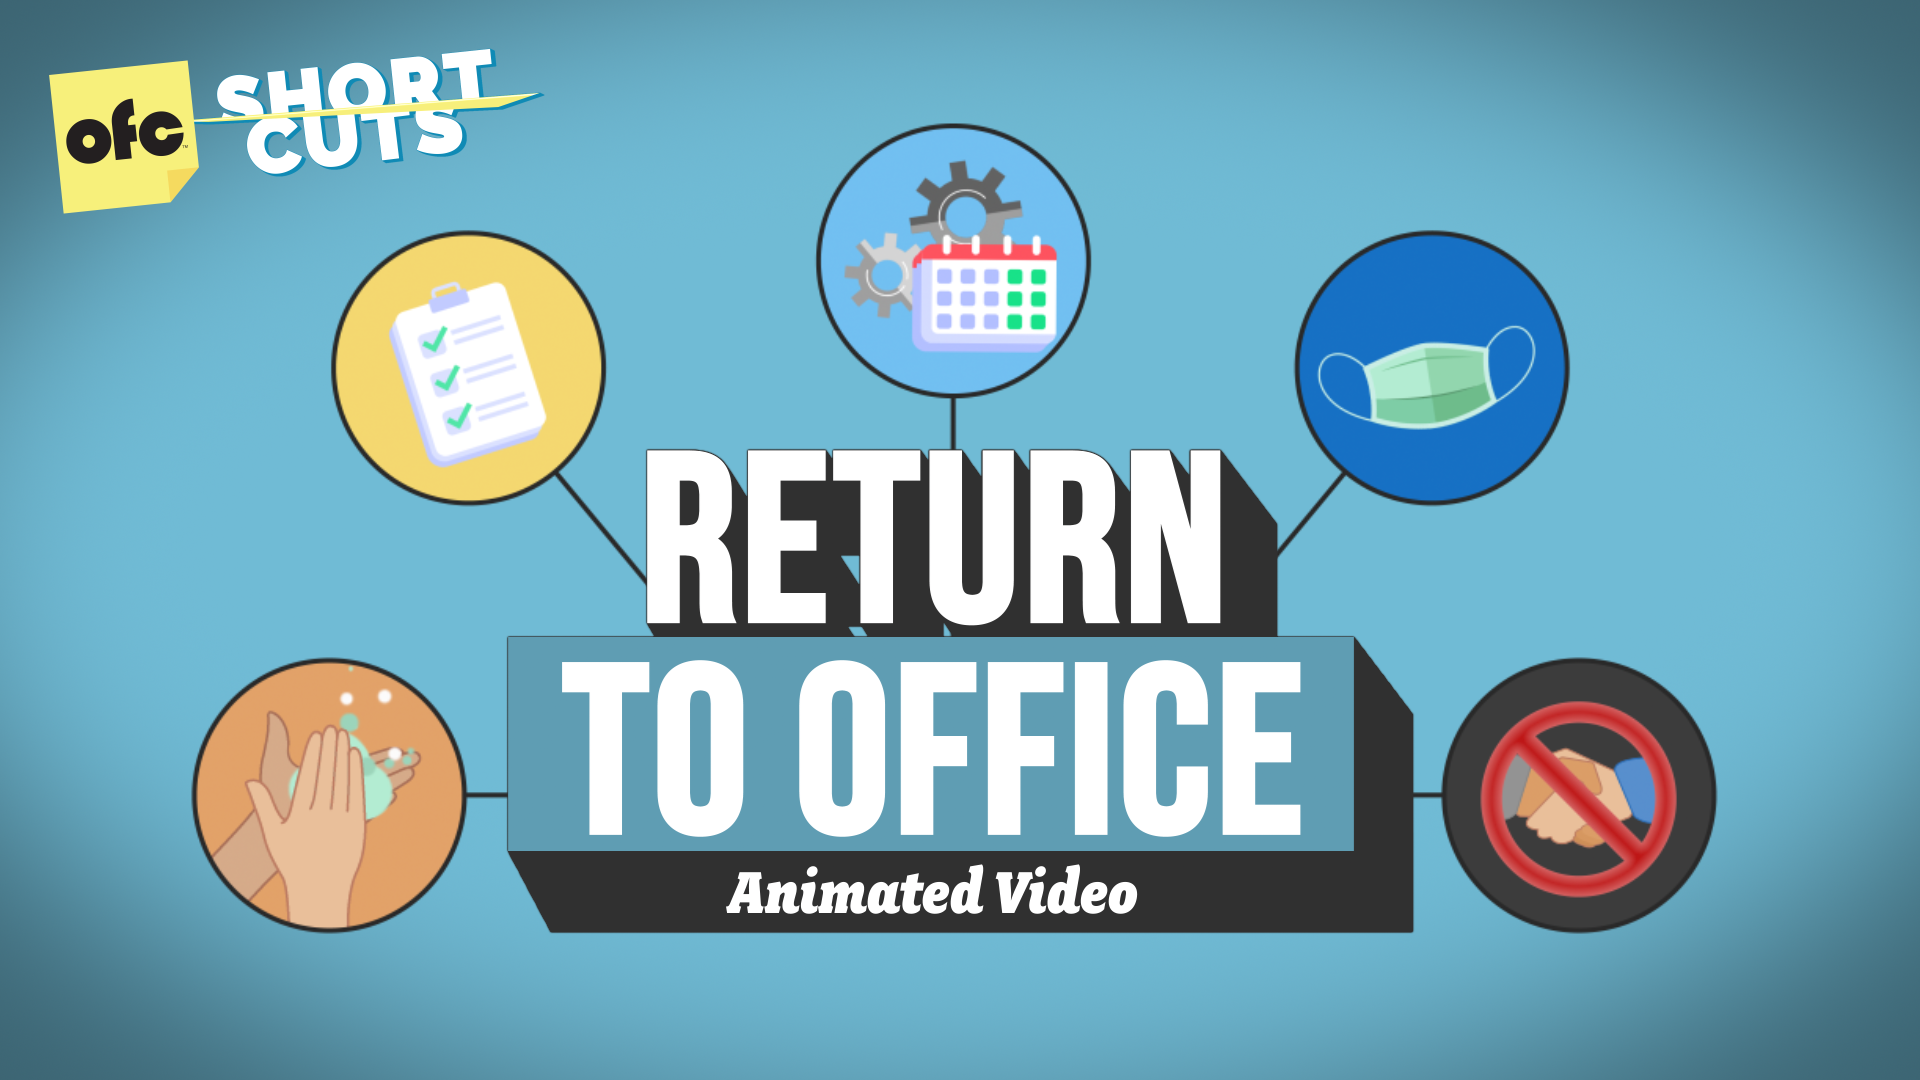 OFC Shortcuts Returning to the Office Animated Video